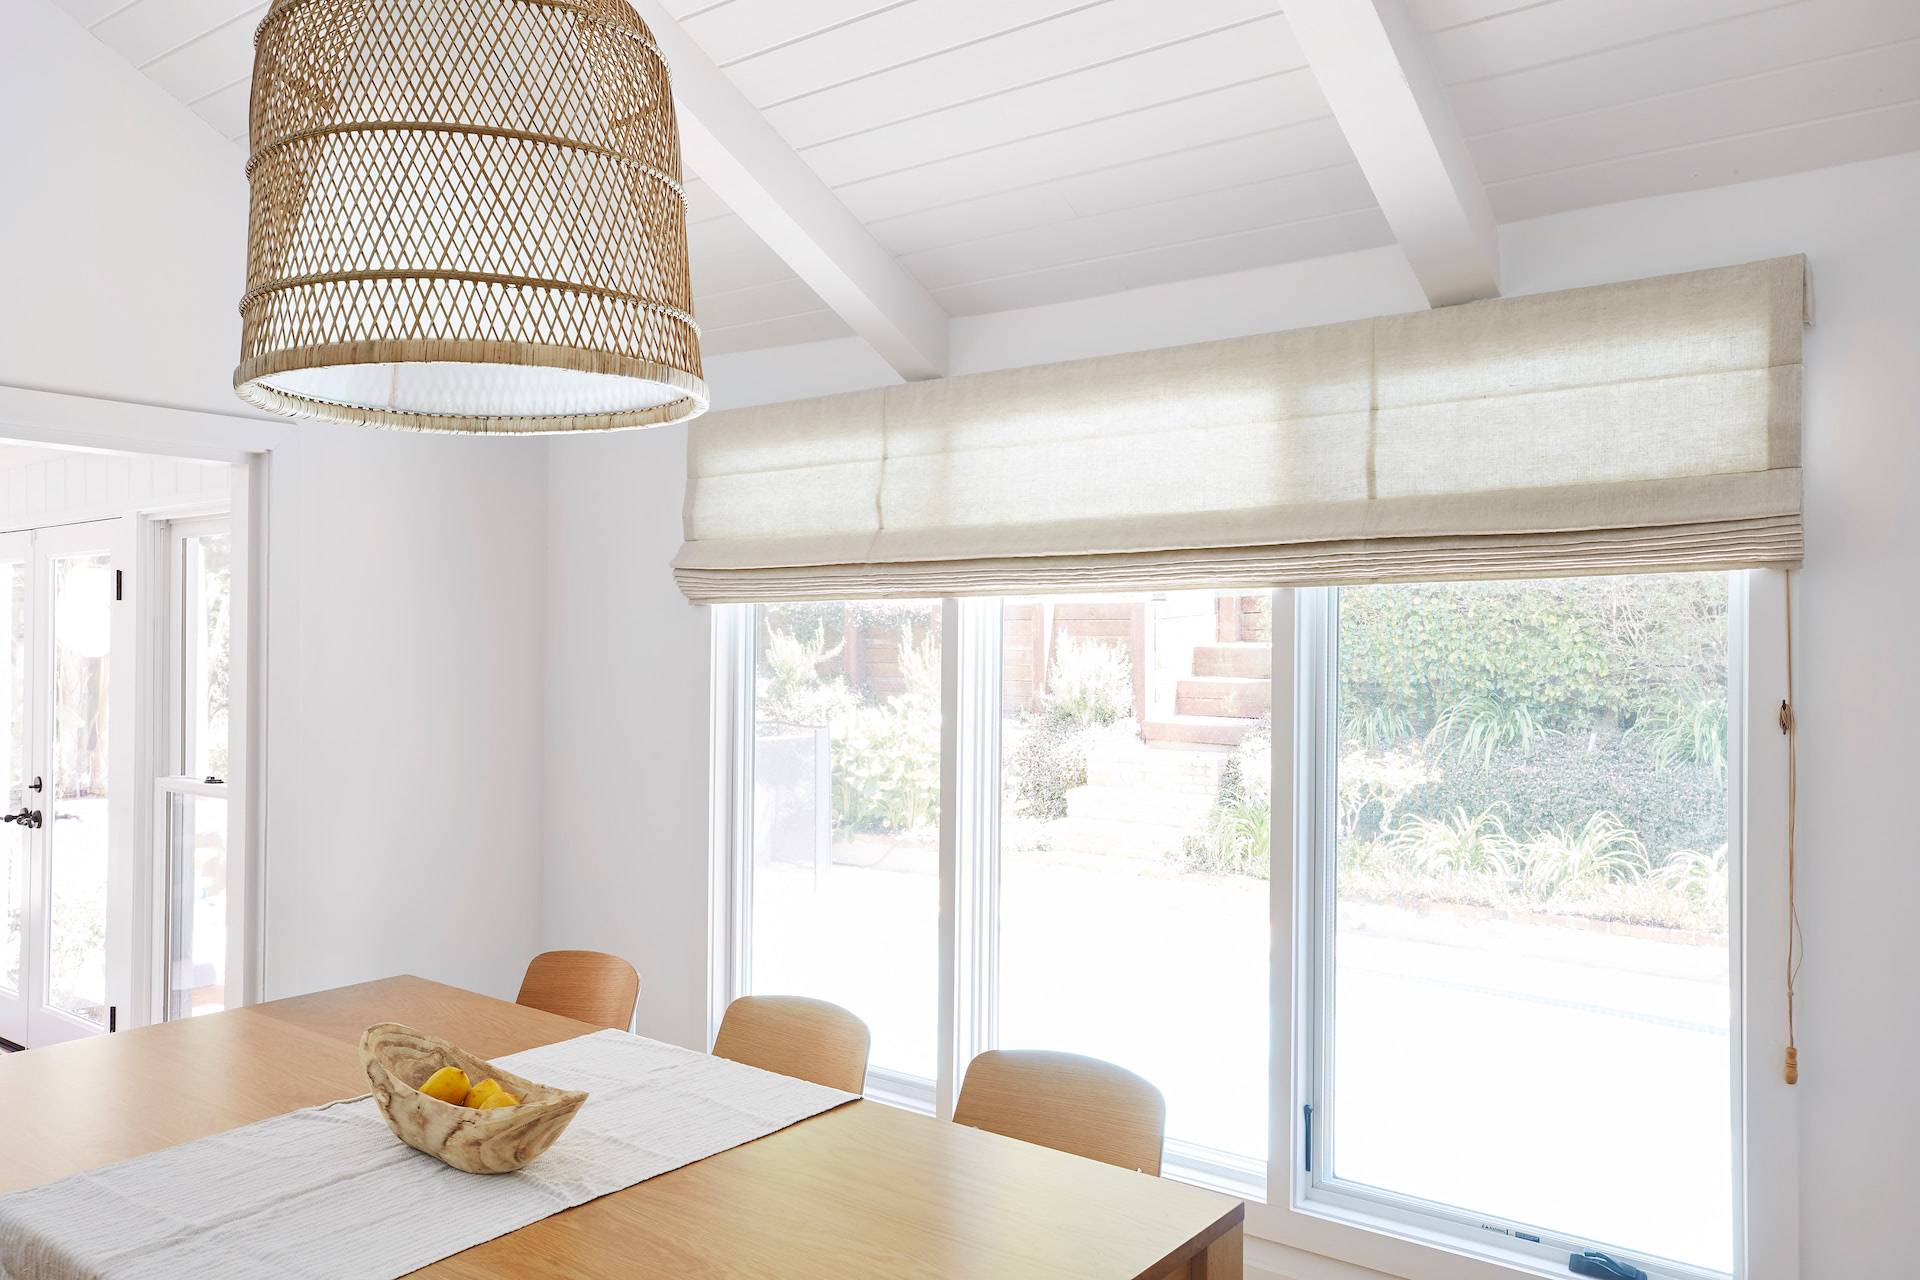 Roman shades raised to look outside a dining room window | Everhem